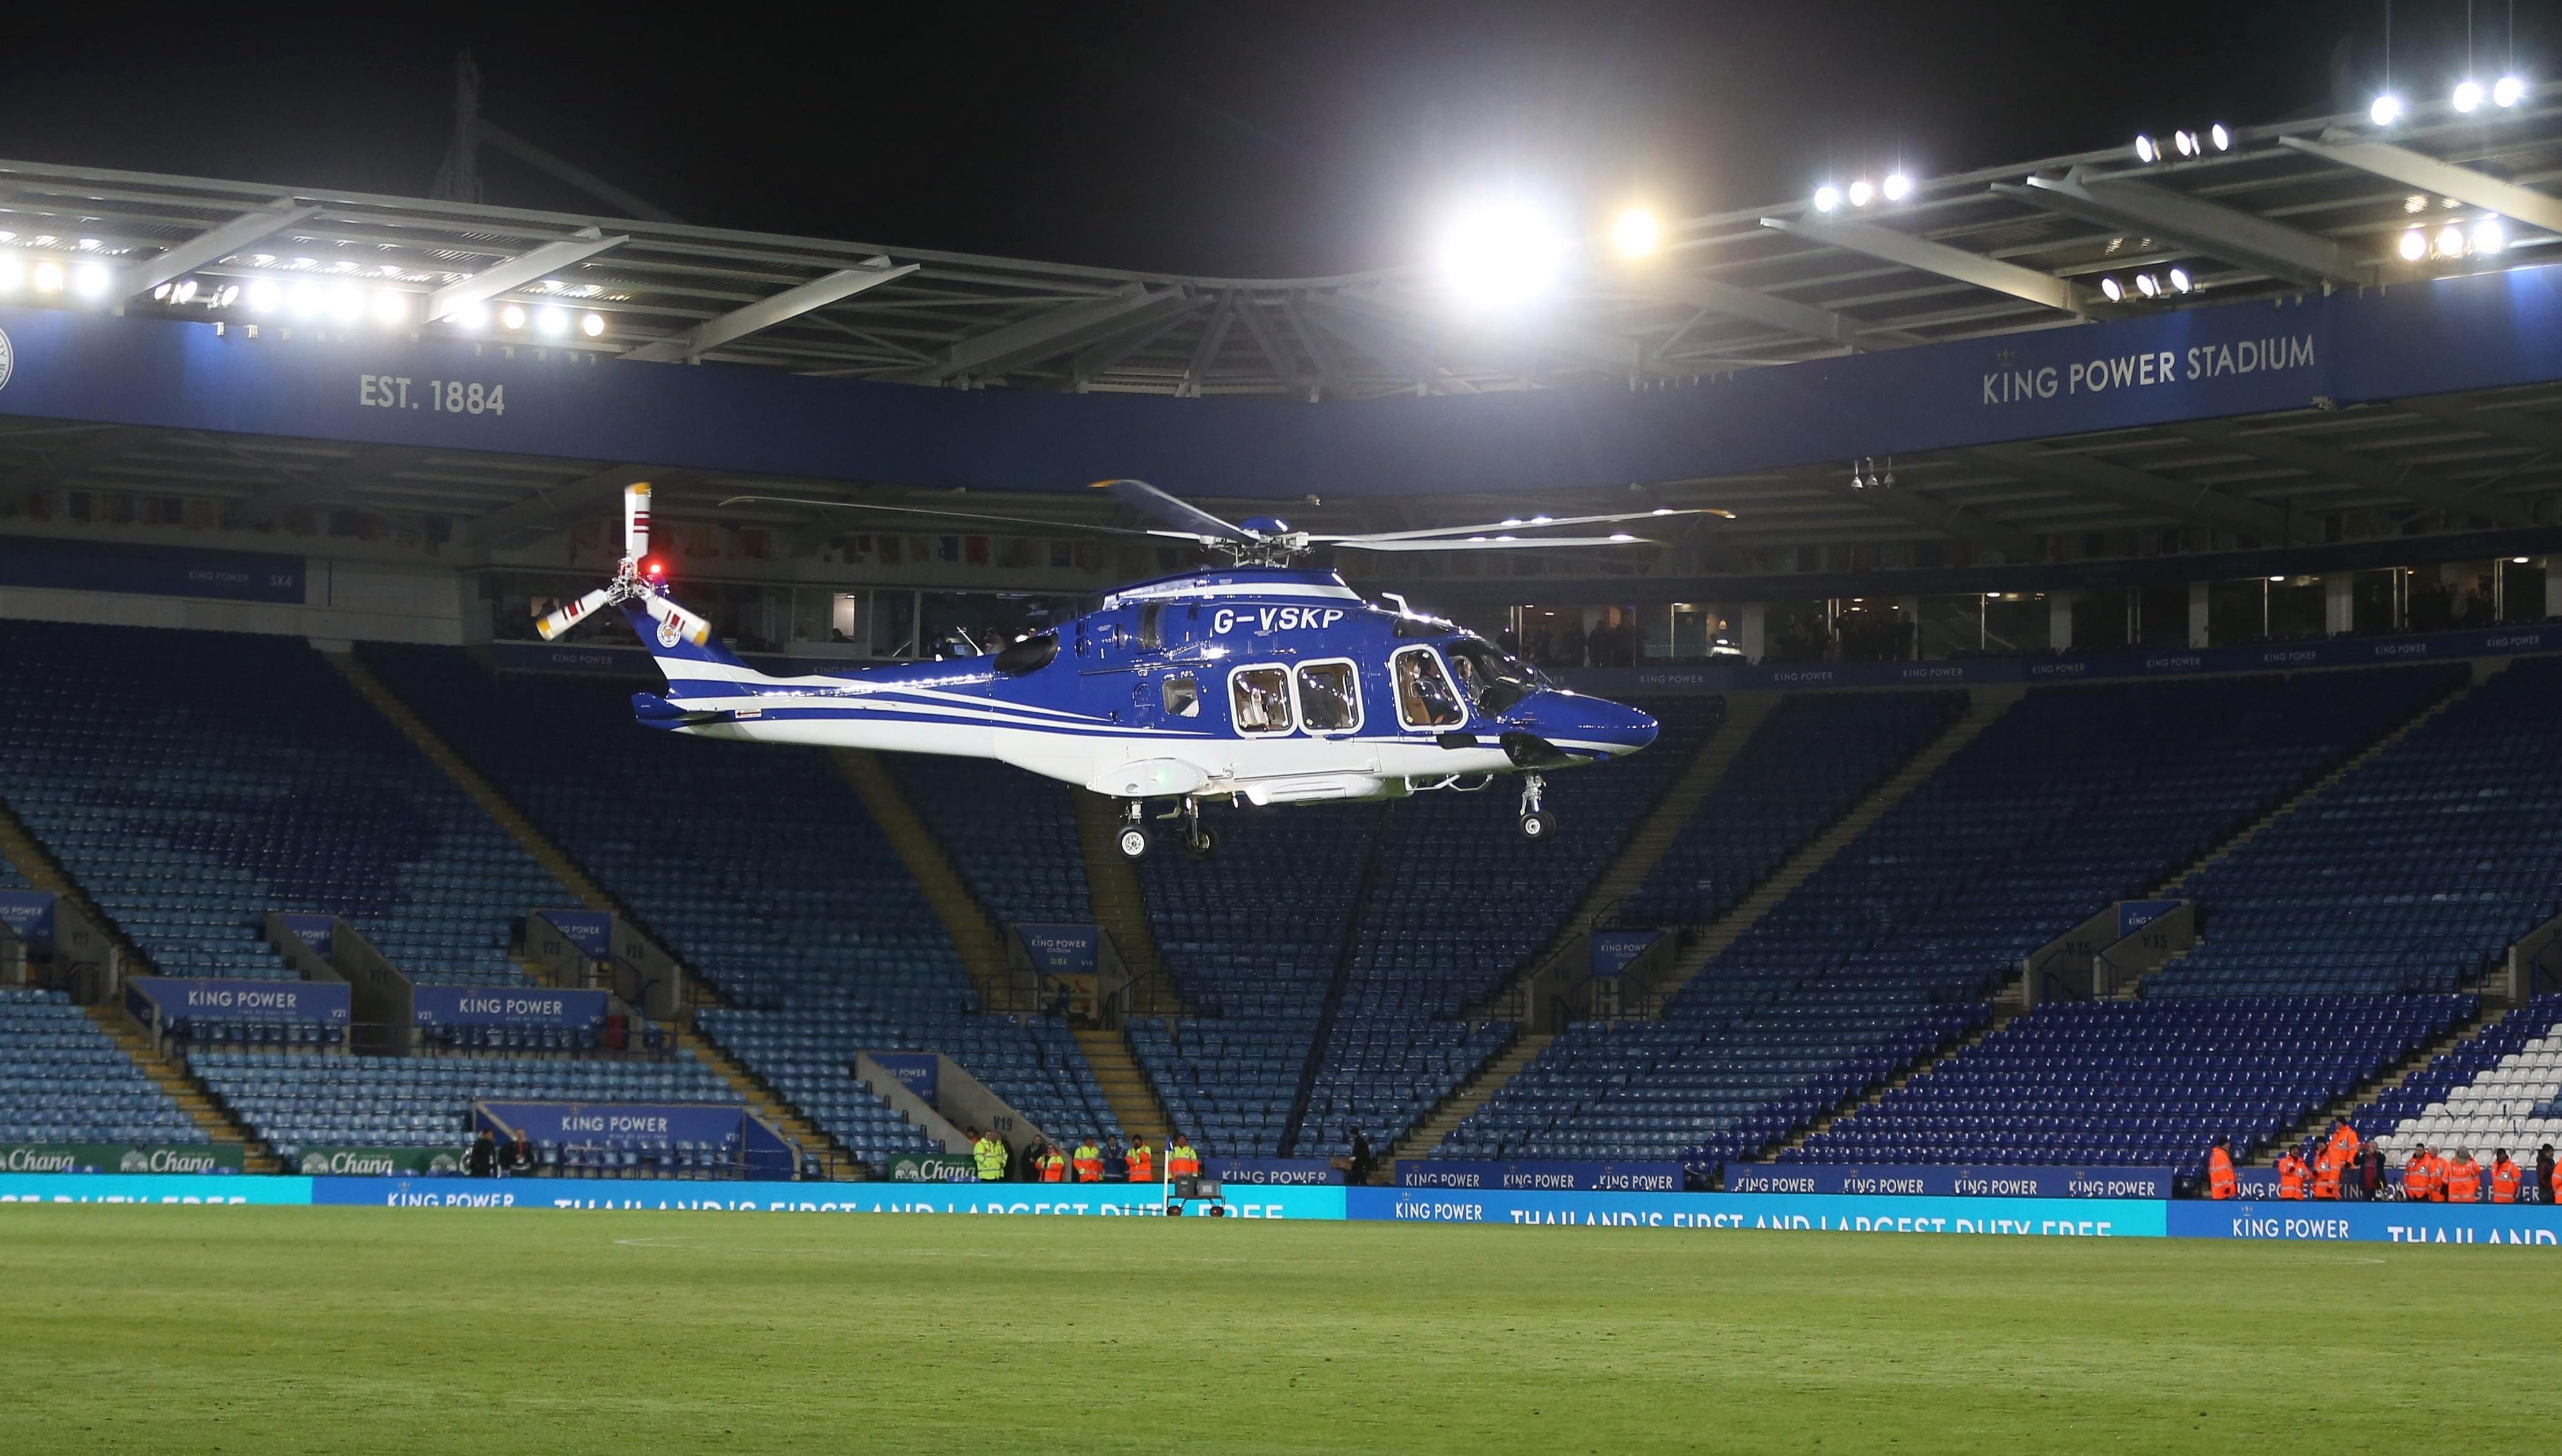 The helicopter was seen landing on the pitch after the final whistle